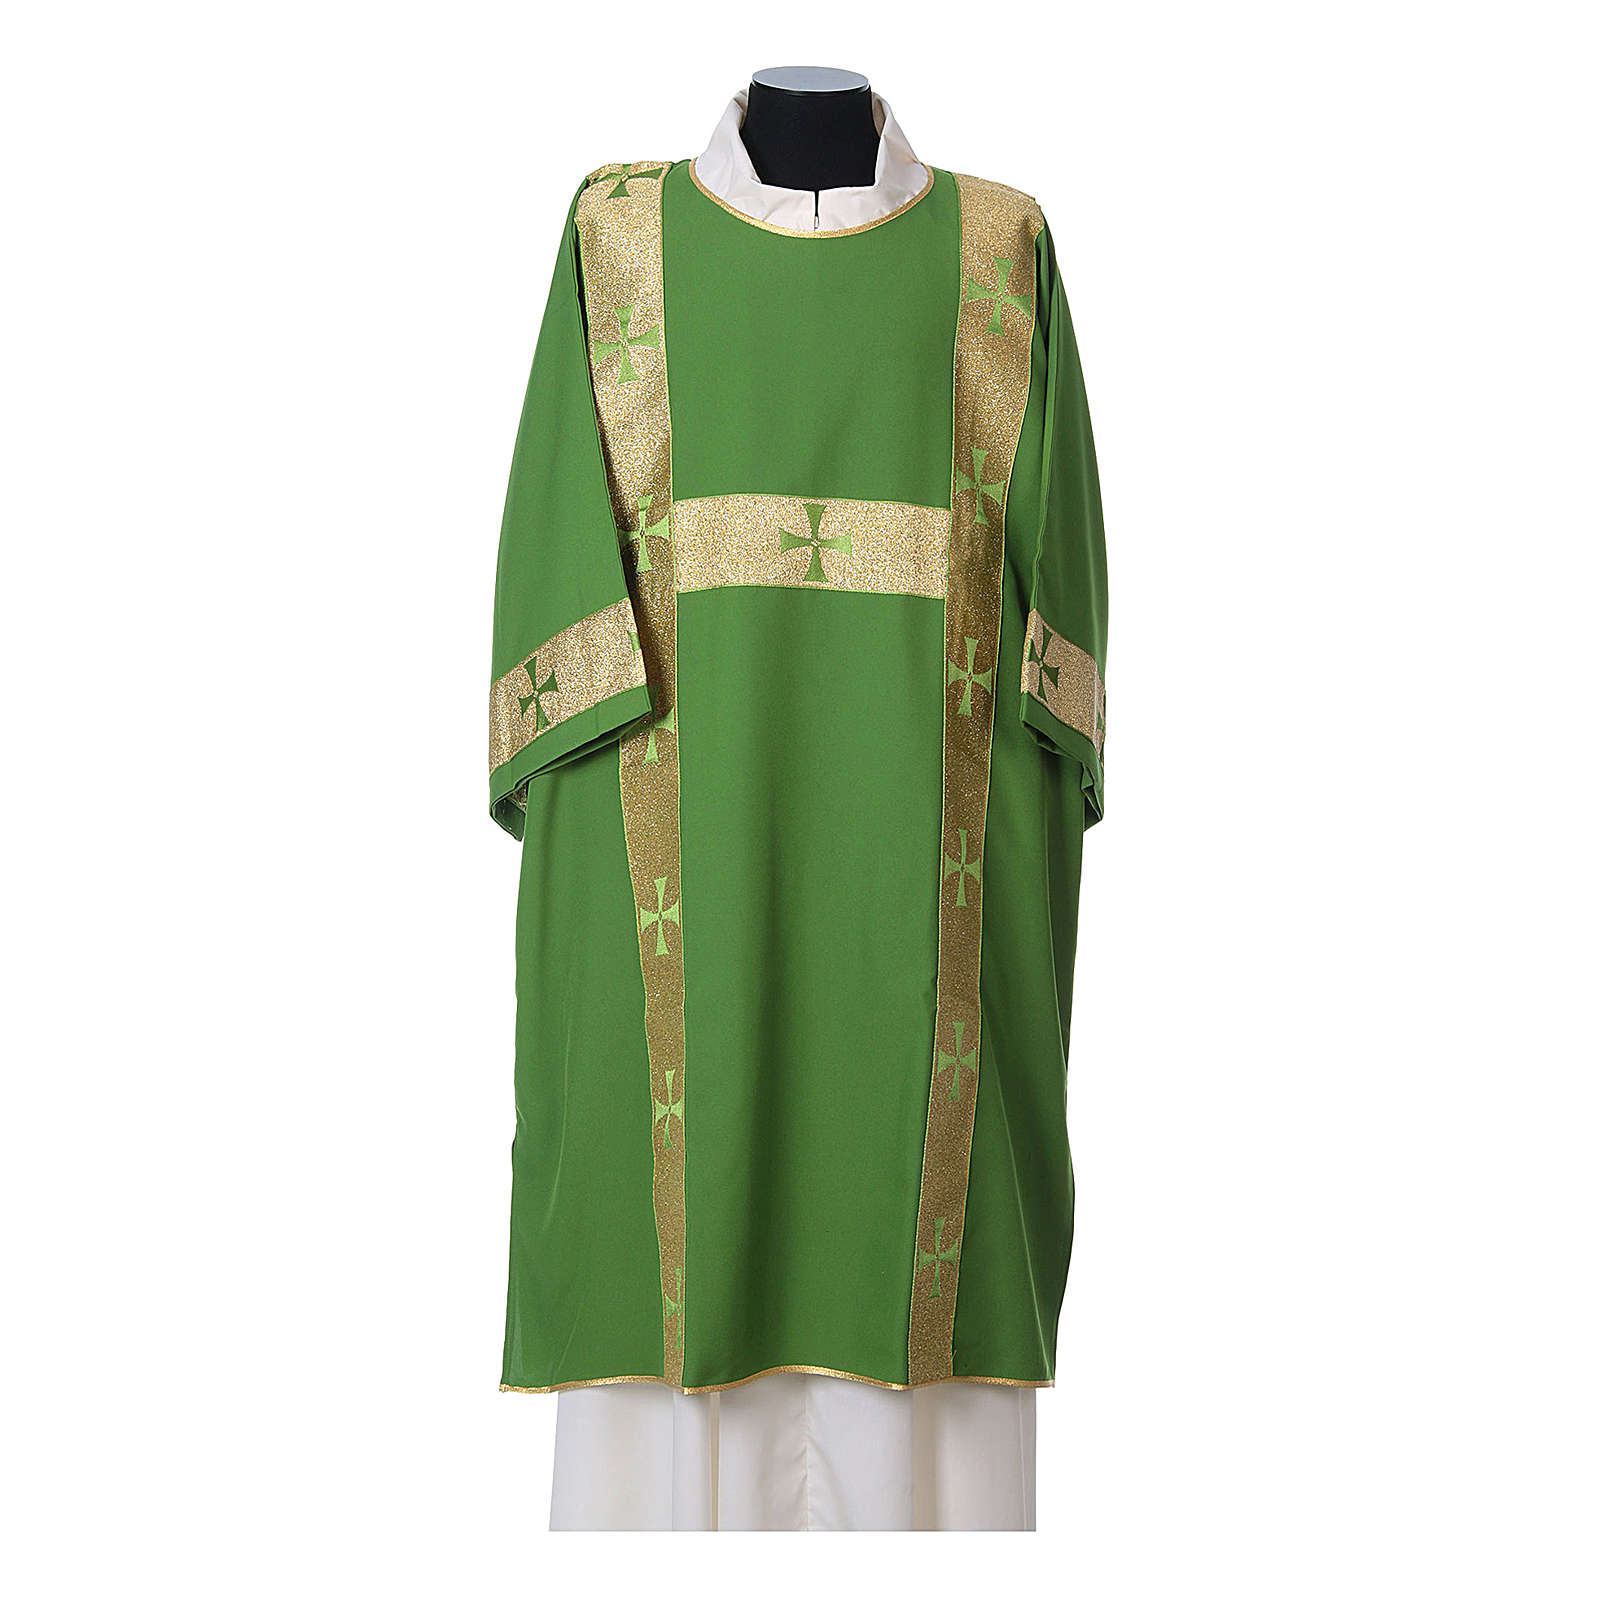 Dalmatic with decoration trim on front made in Vatican fabric 100% polyester 4